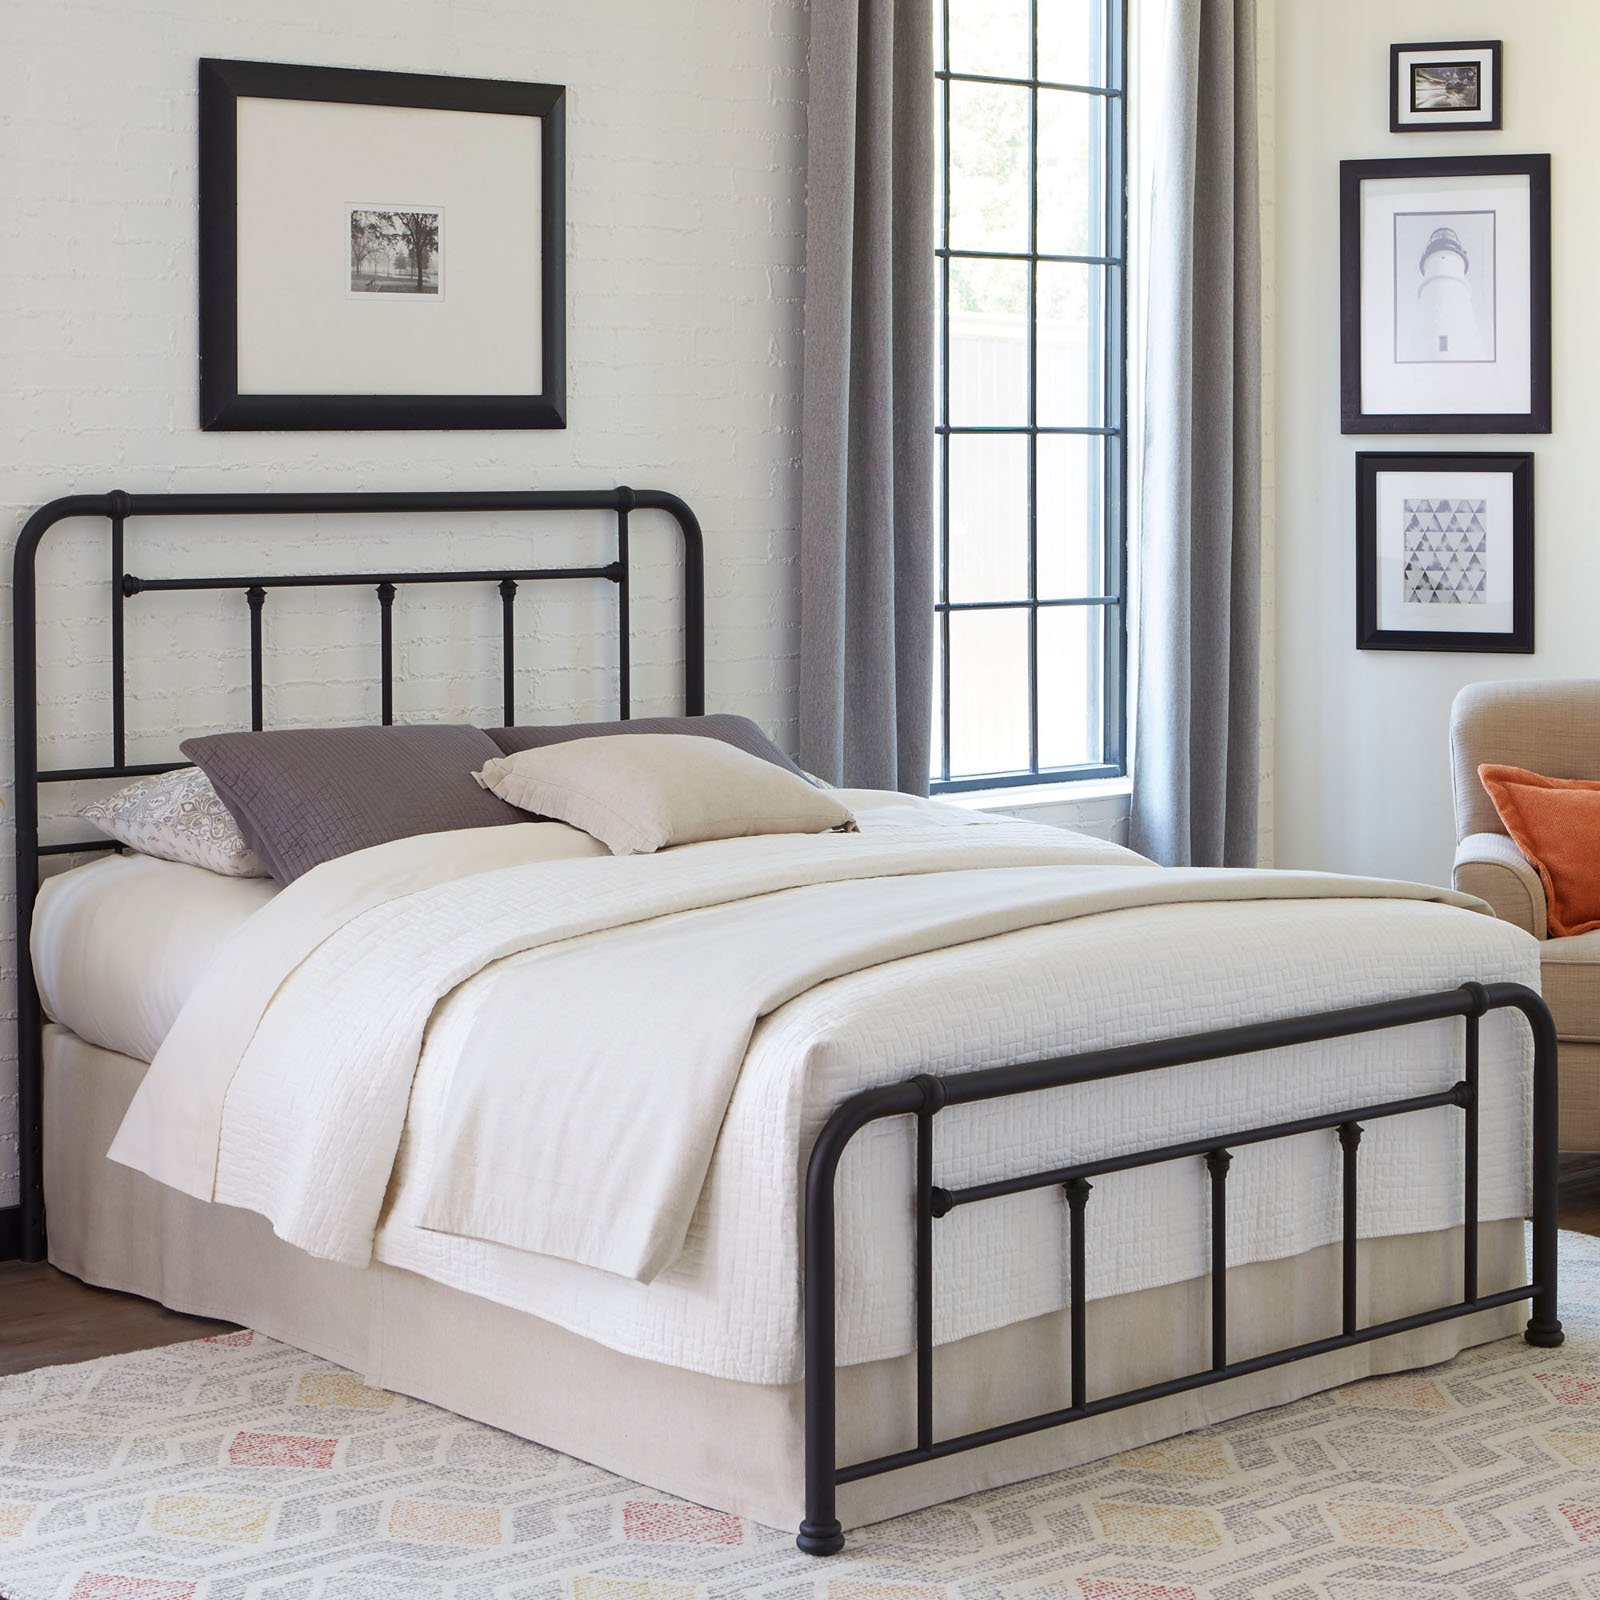 Baldwin Complete Bed with Metal Poststings, Textured Black Finish, Multiple sizes available by Fashion Bed Group